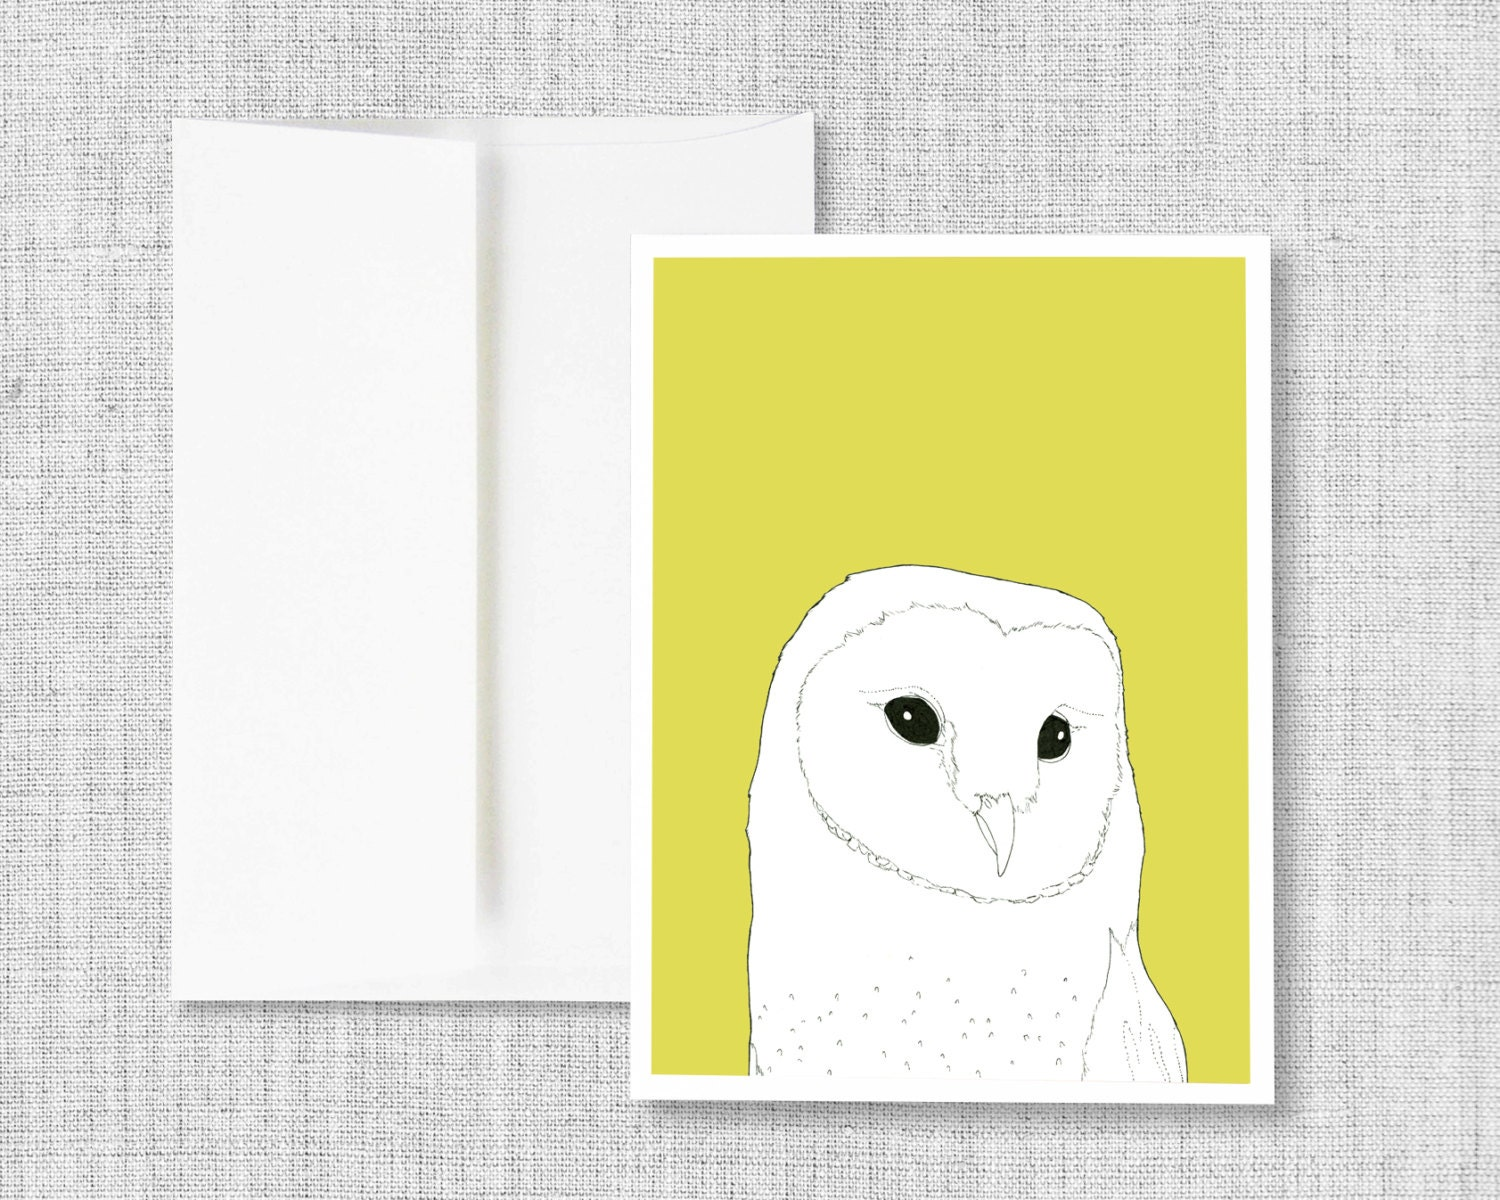 Greeting card blank greeting card greeting card set owl barn owl greeting card blank greeting card greeting card set owl barn owl yellow owl art drawing blank cards card set bird barn owl m4hsunfo